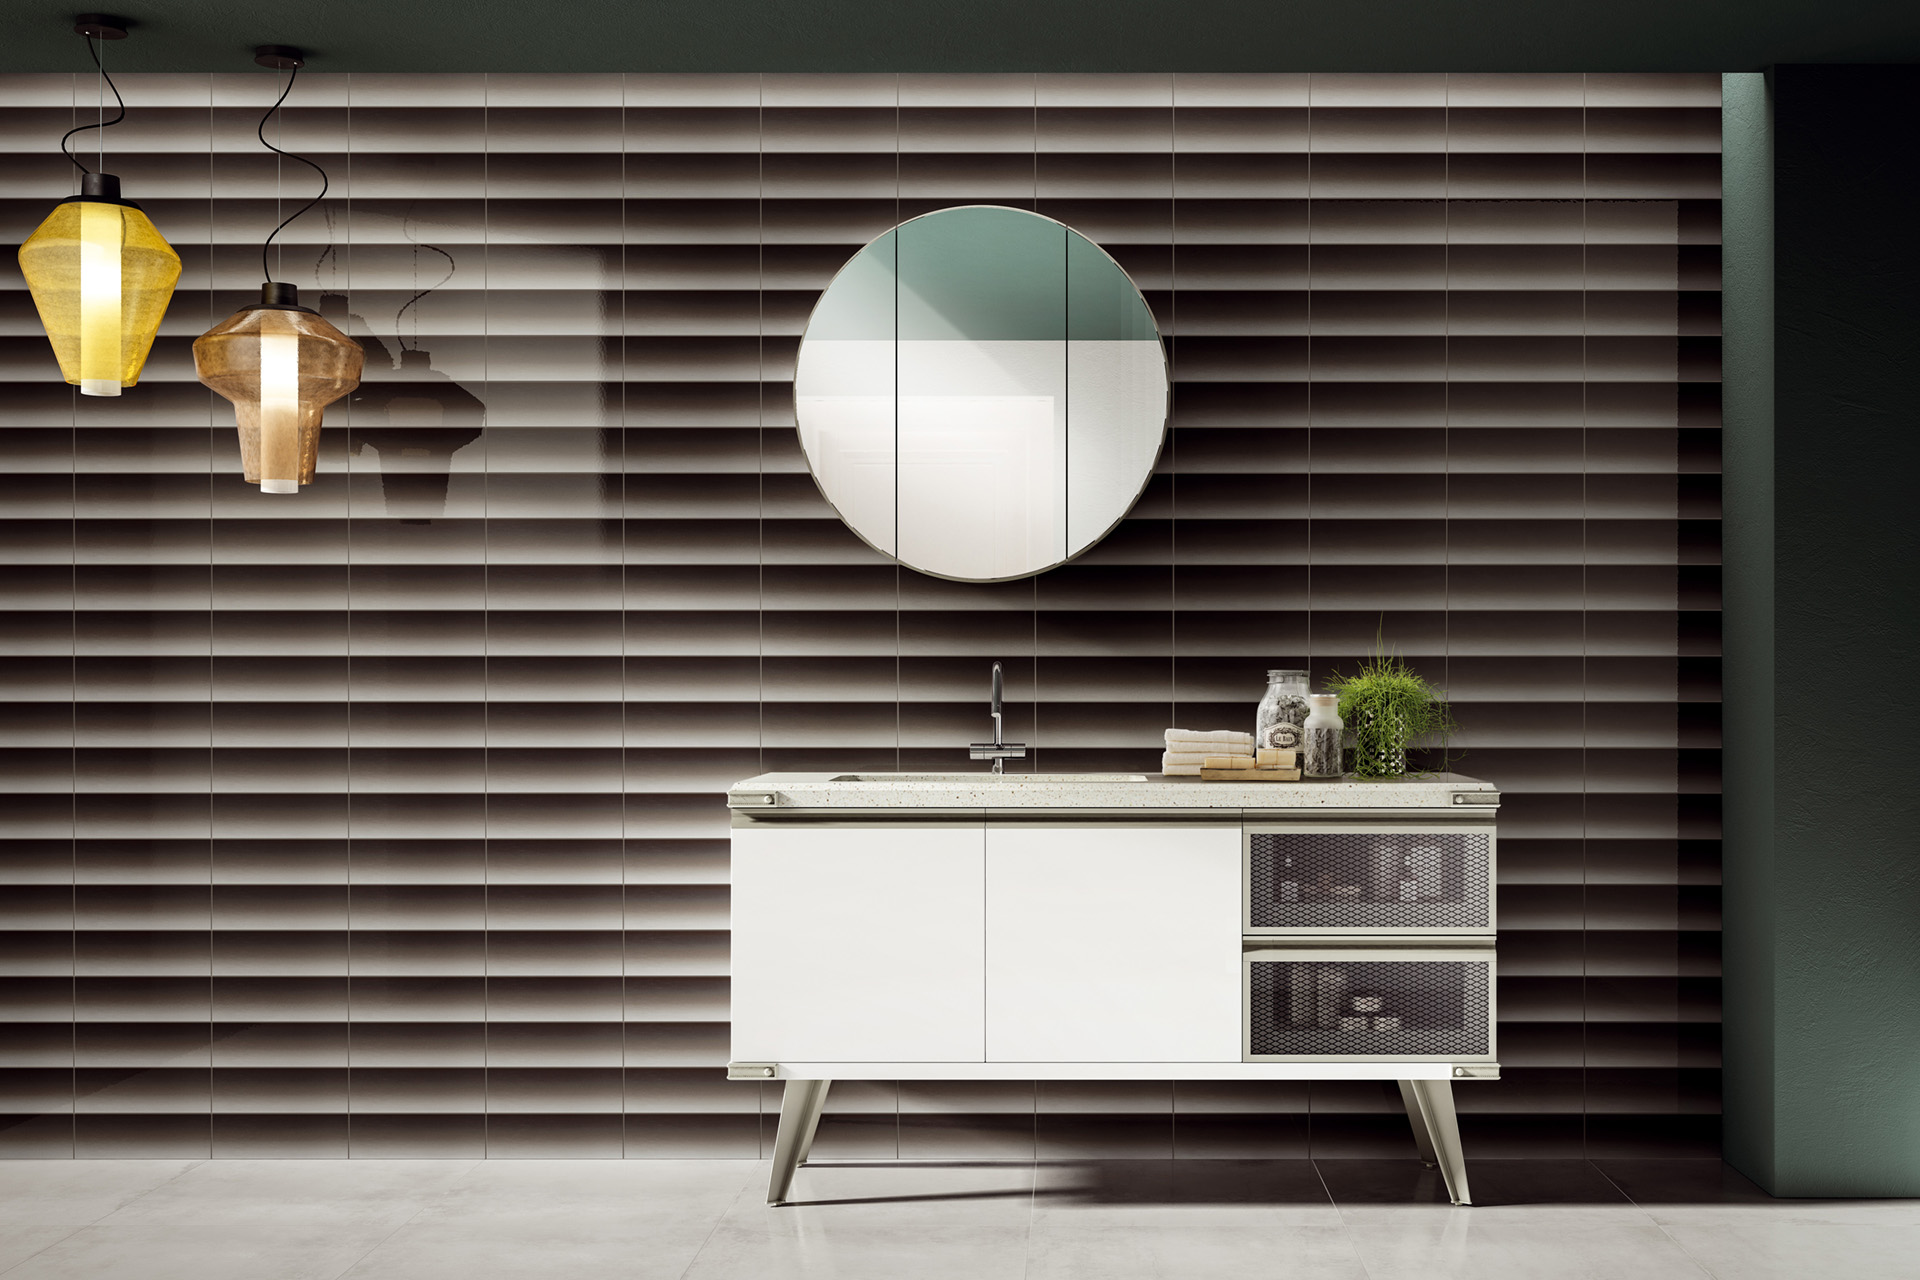 Stone Effect Porcelain Tiles - Shades of Blinds